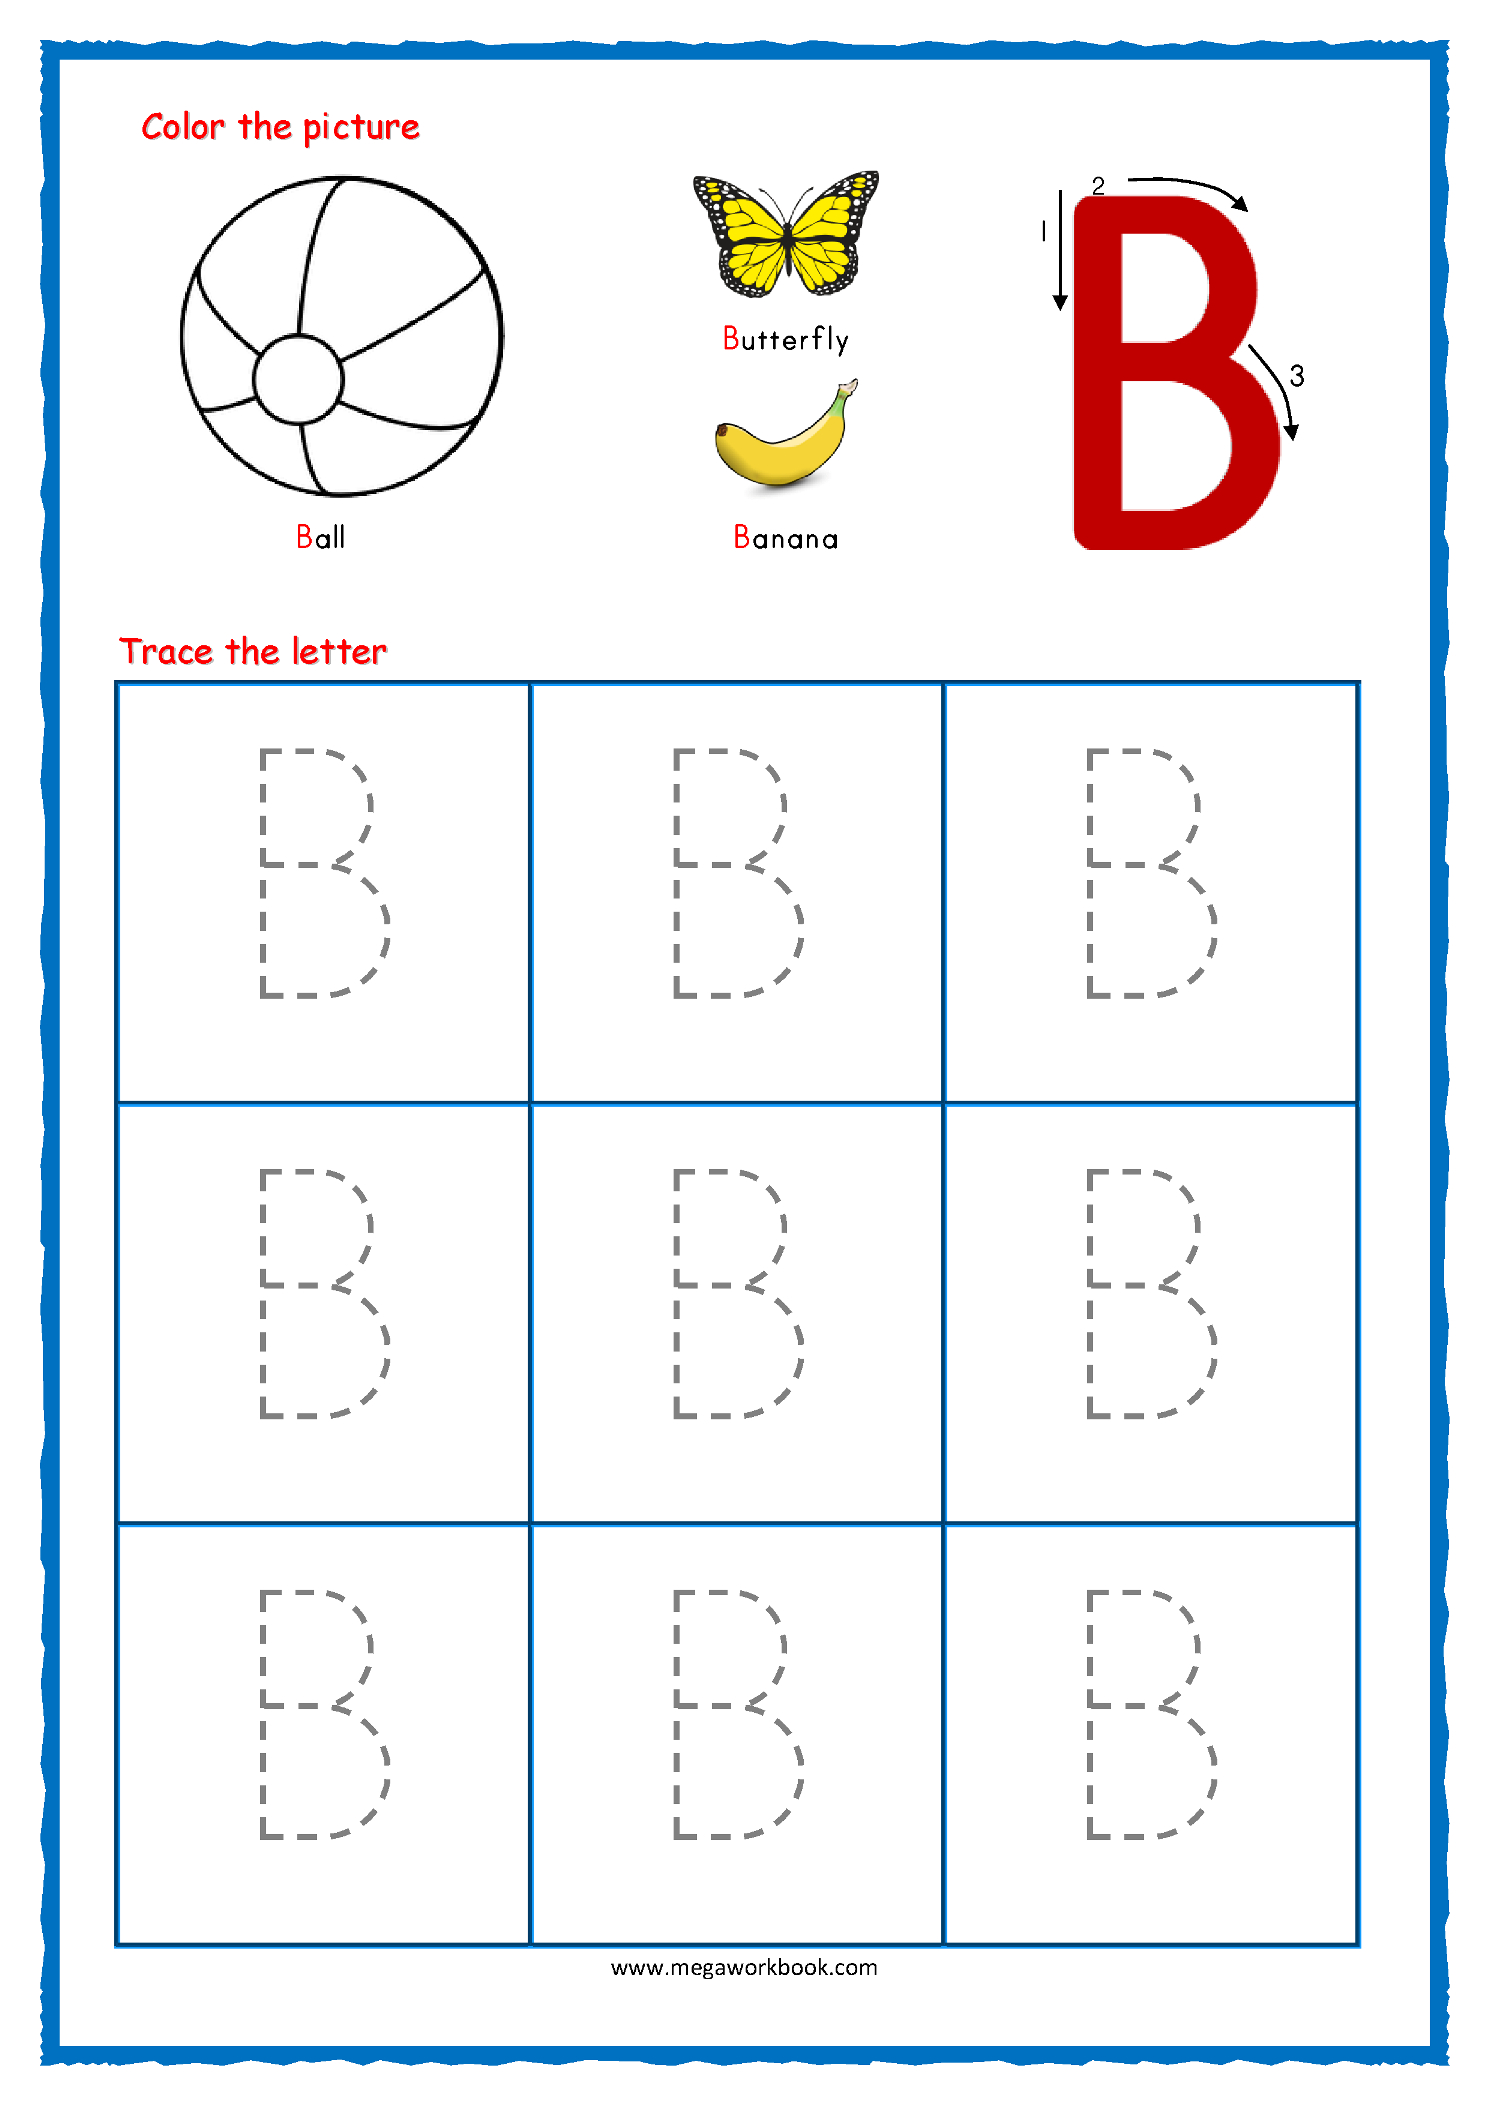 Coloring Book : Free Preschool Printables Coloring Book inside Tracing Letters Printable Free